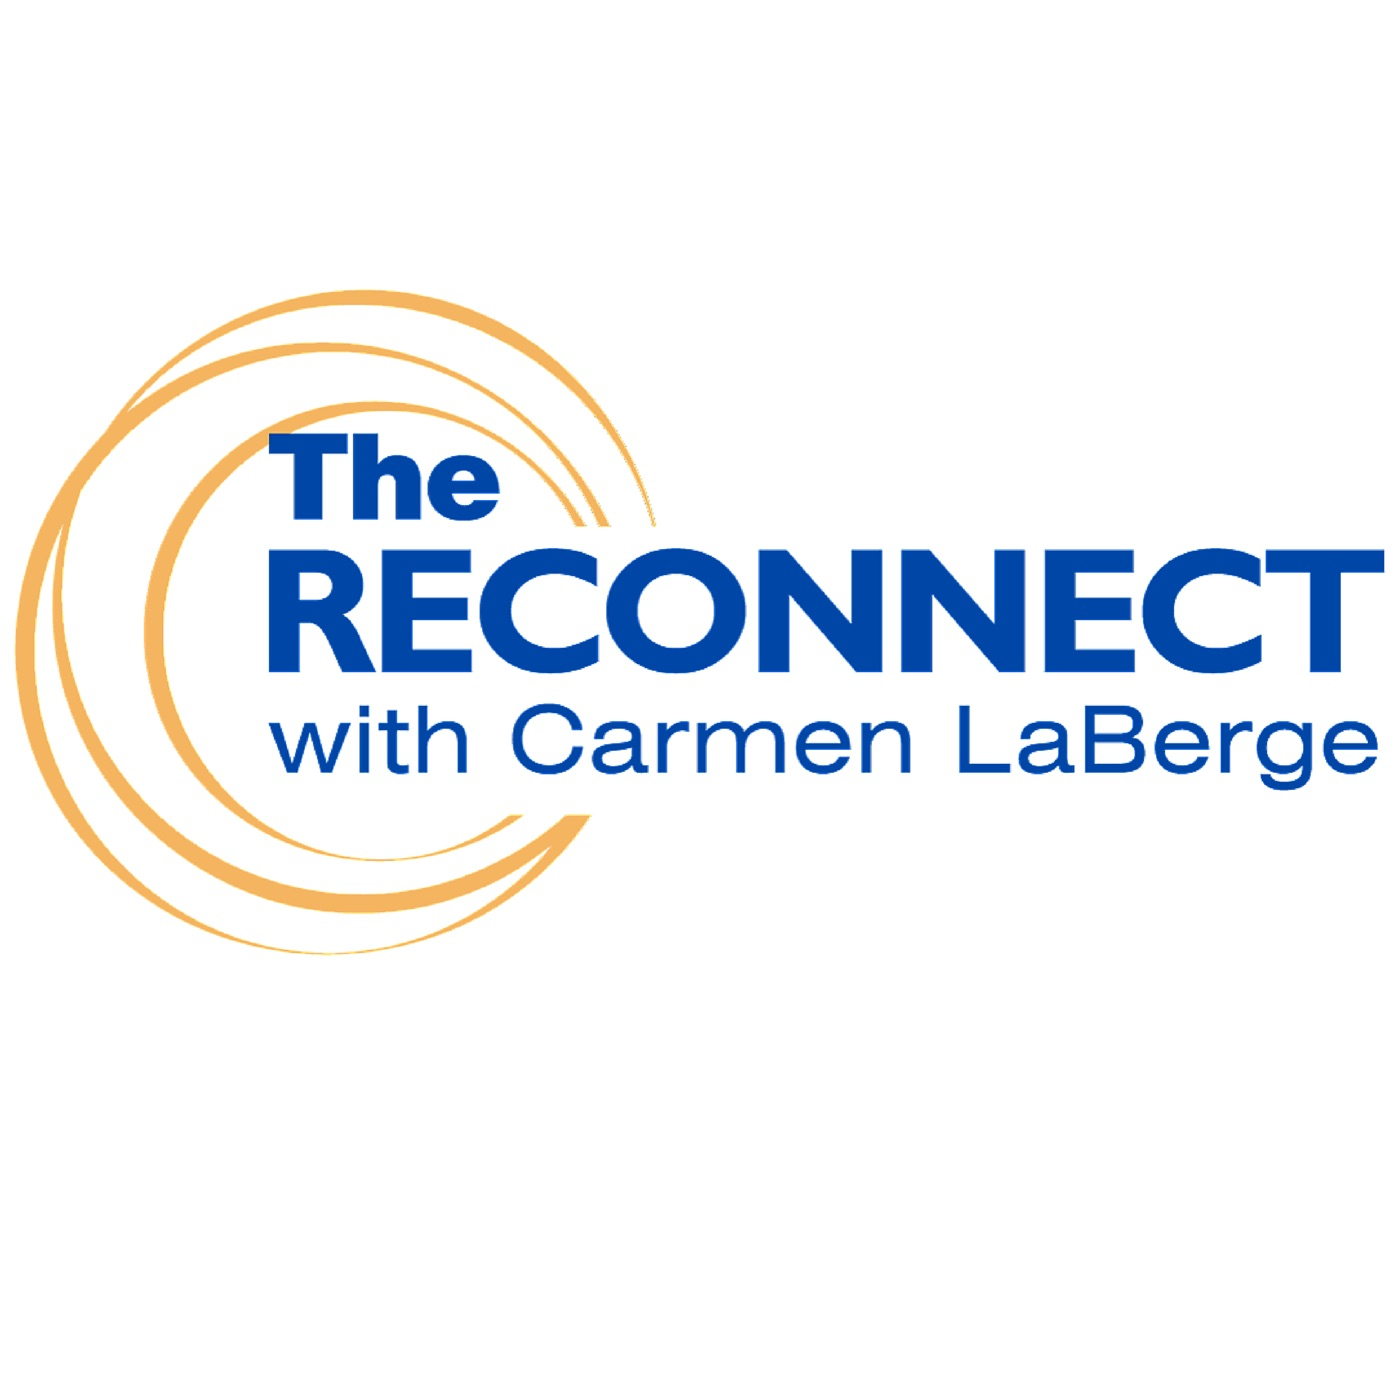 The Reconnect